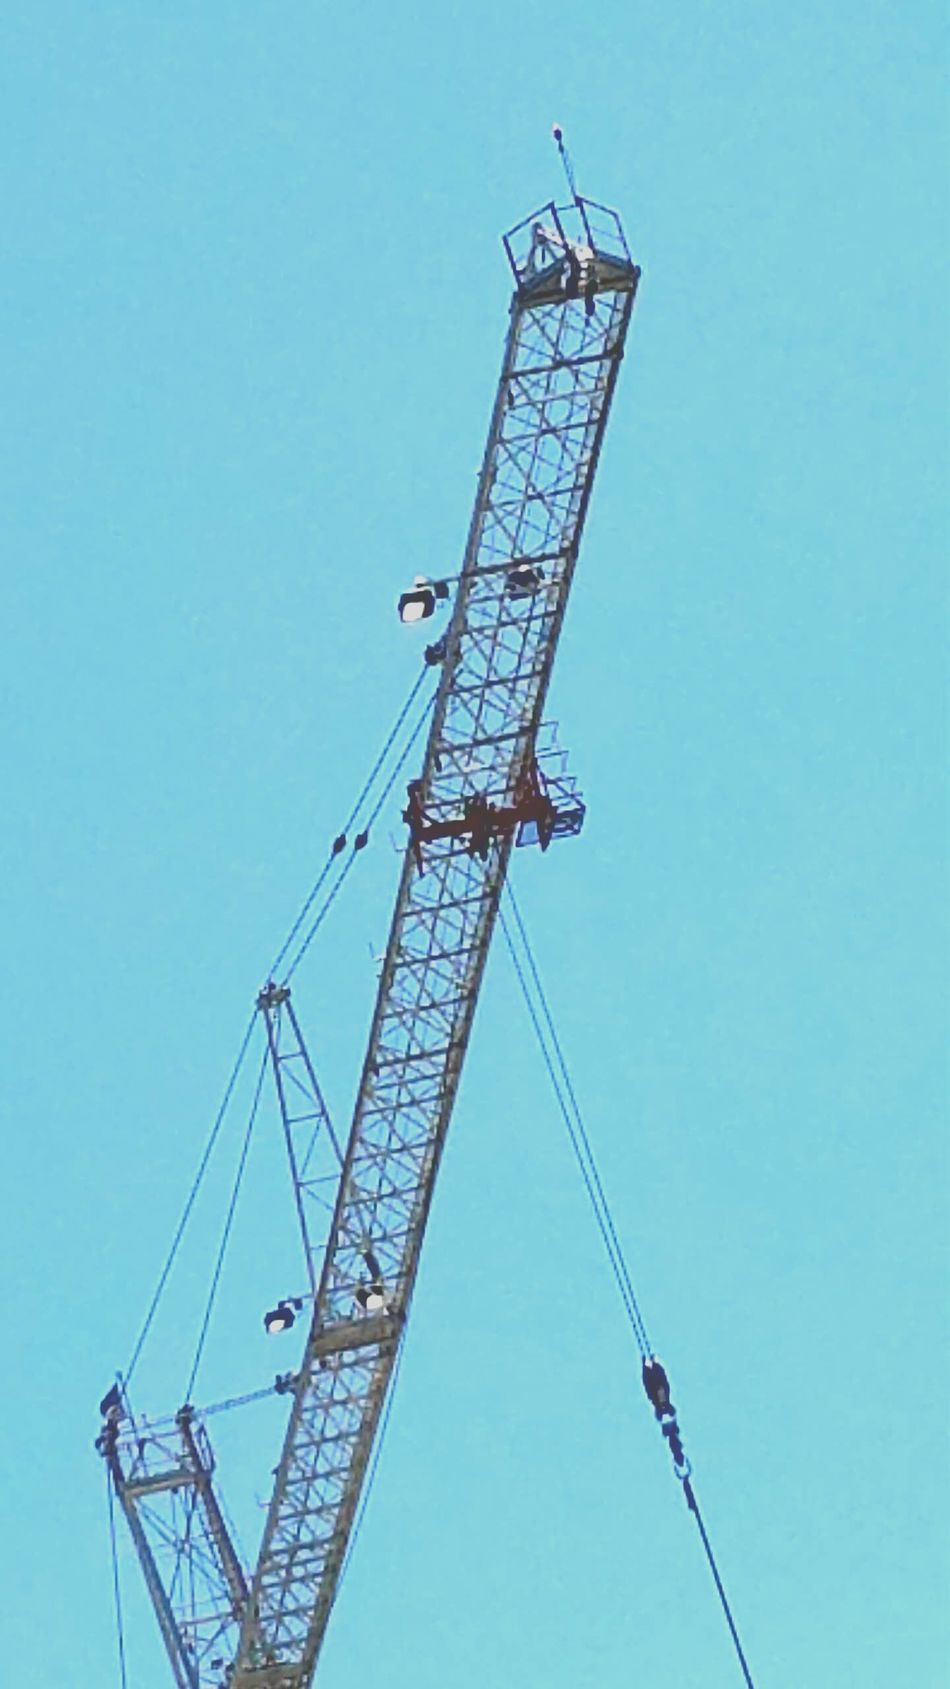 My Love❤ Does Size Matter? Street Photography Pivotal Ideas I Love Machines Construction Machinery My Obsession❤ Check This Out A Bird's Eye View Taking Photos Hello World Eyeemphoto